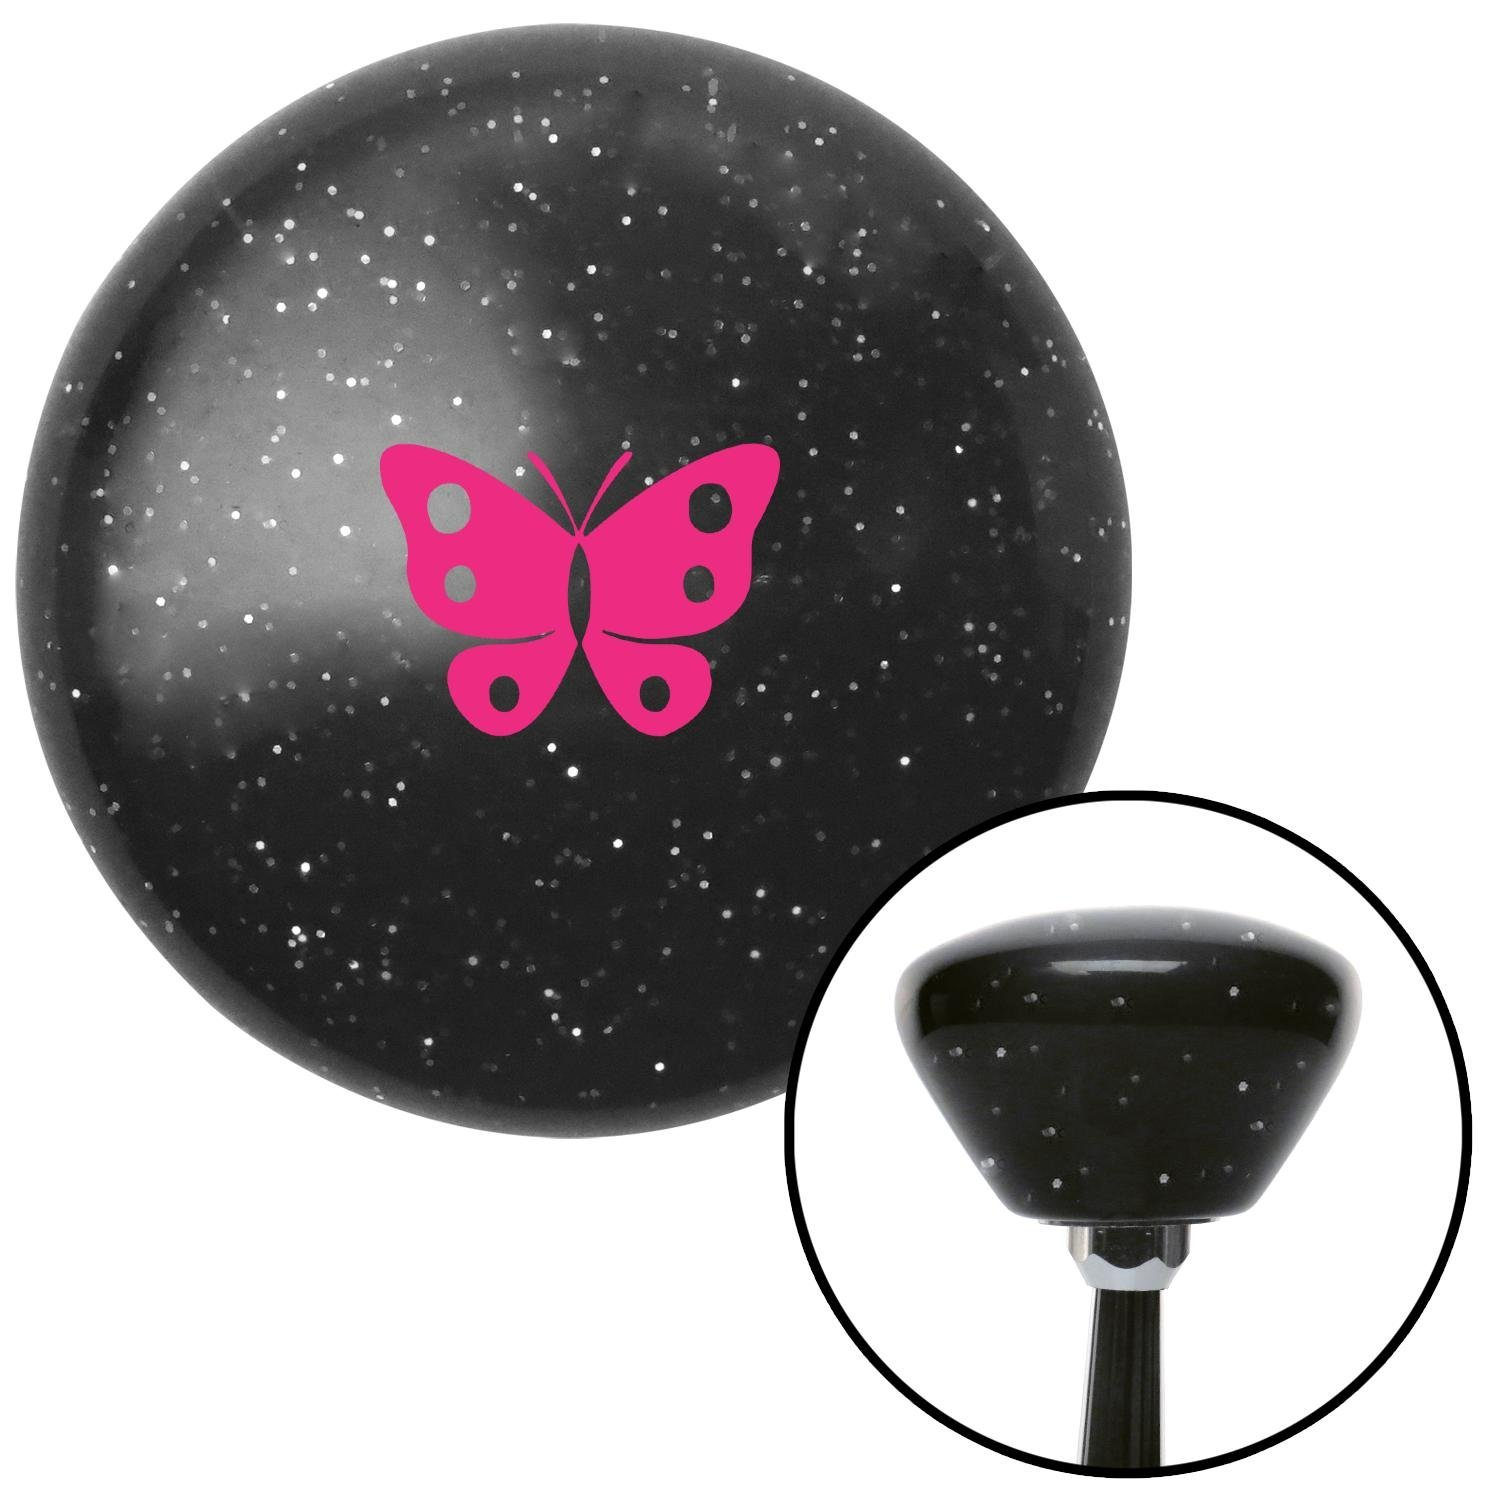 American Shifter 286872 Shift Knob Pink Classic Butterfly Black Retro Metal Flake with M16 x 1.5 Insert